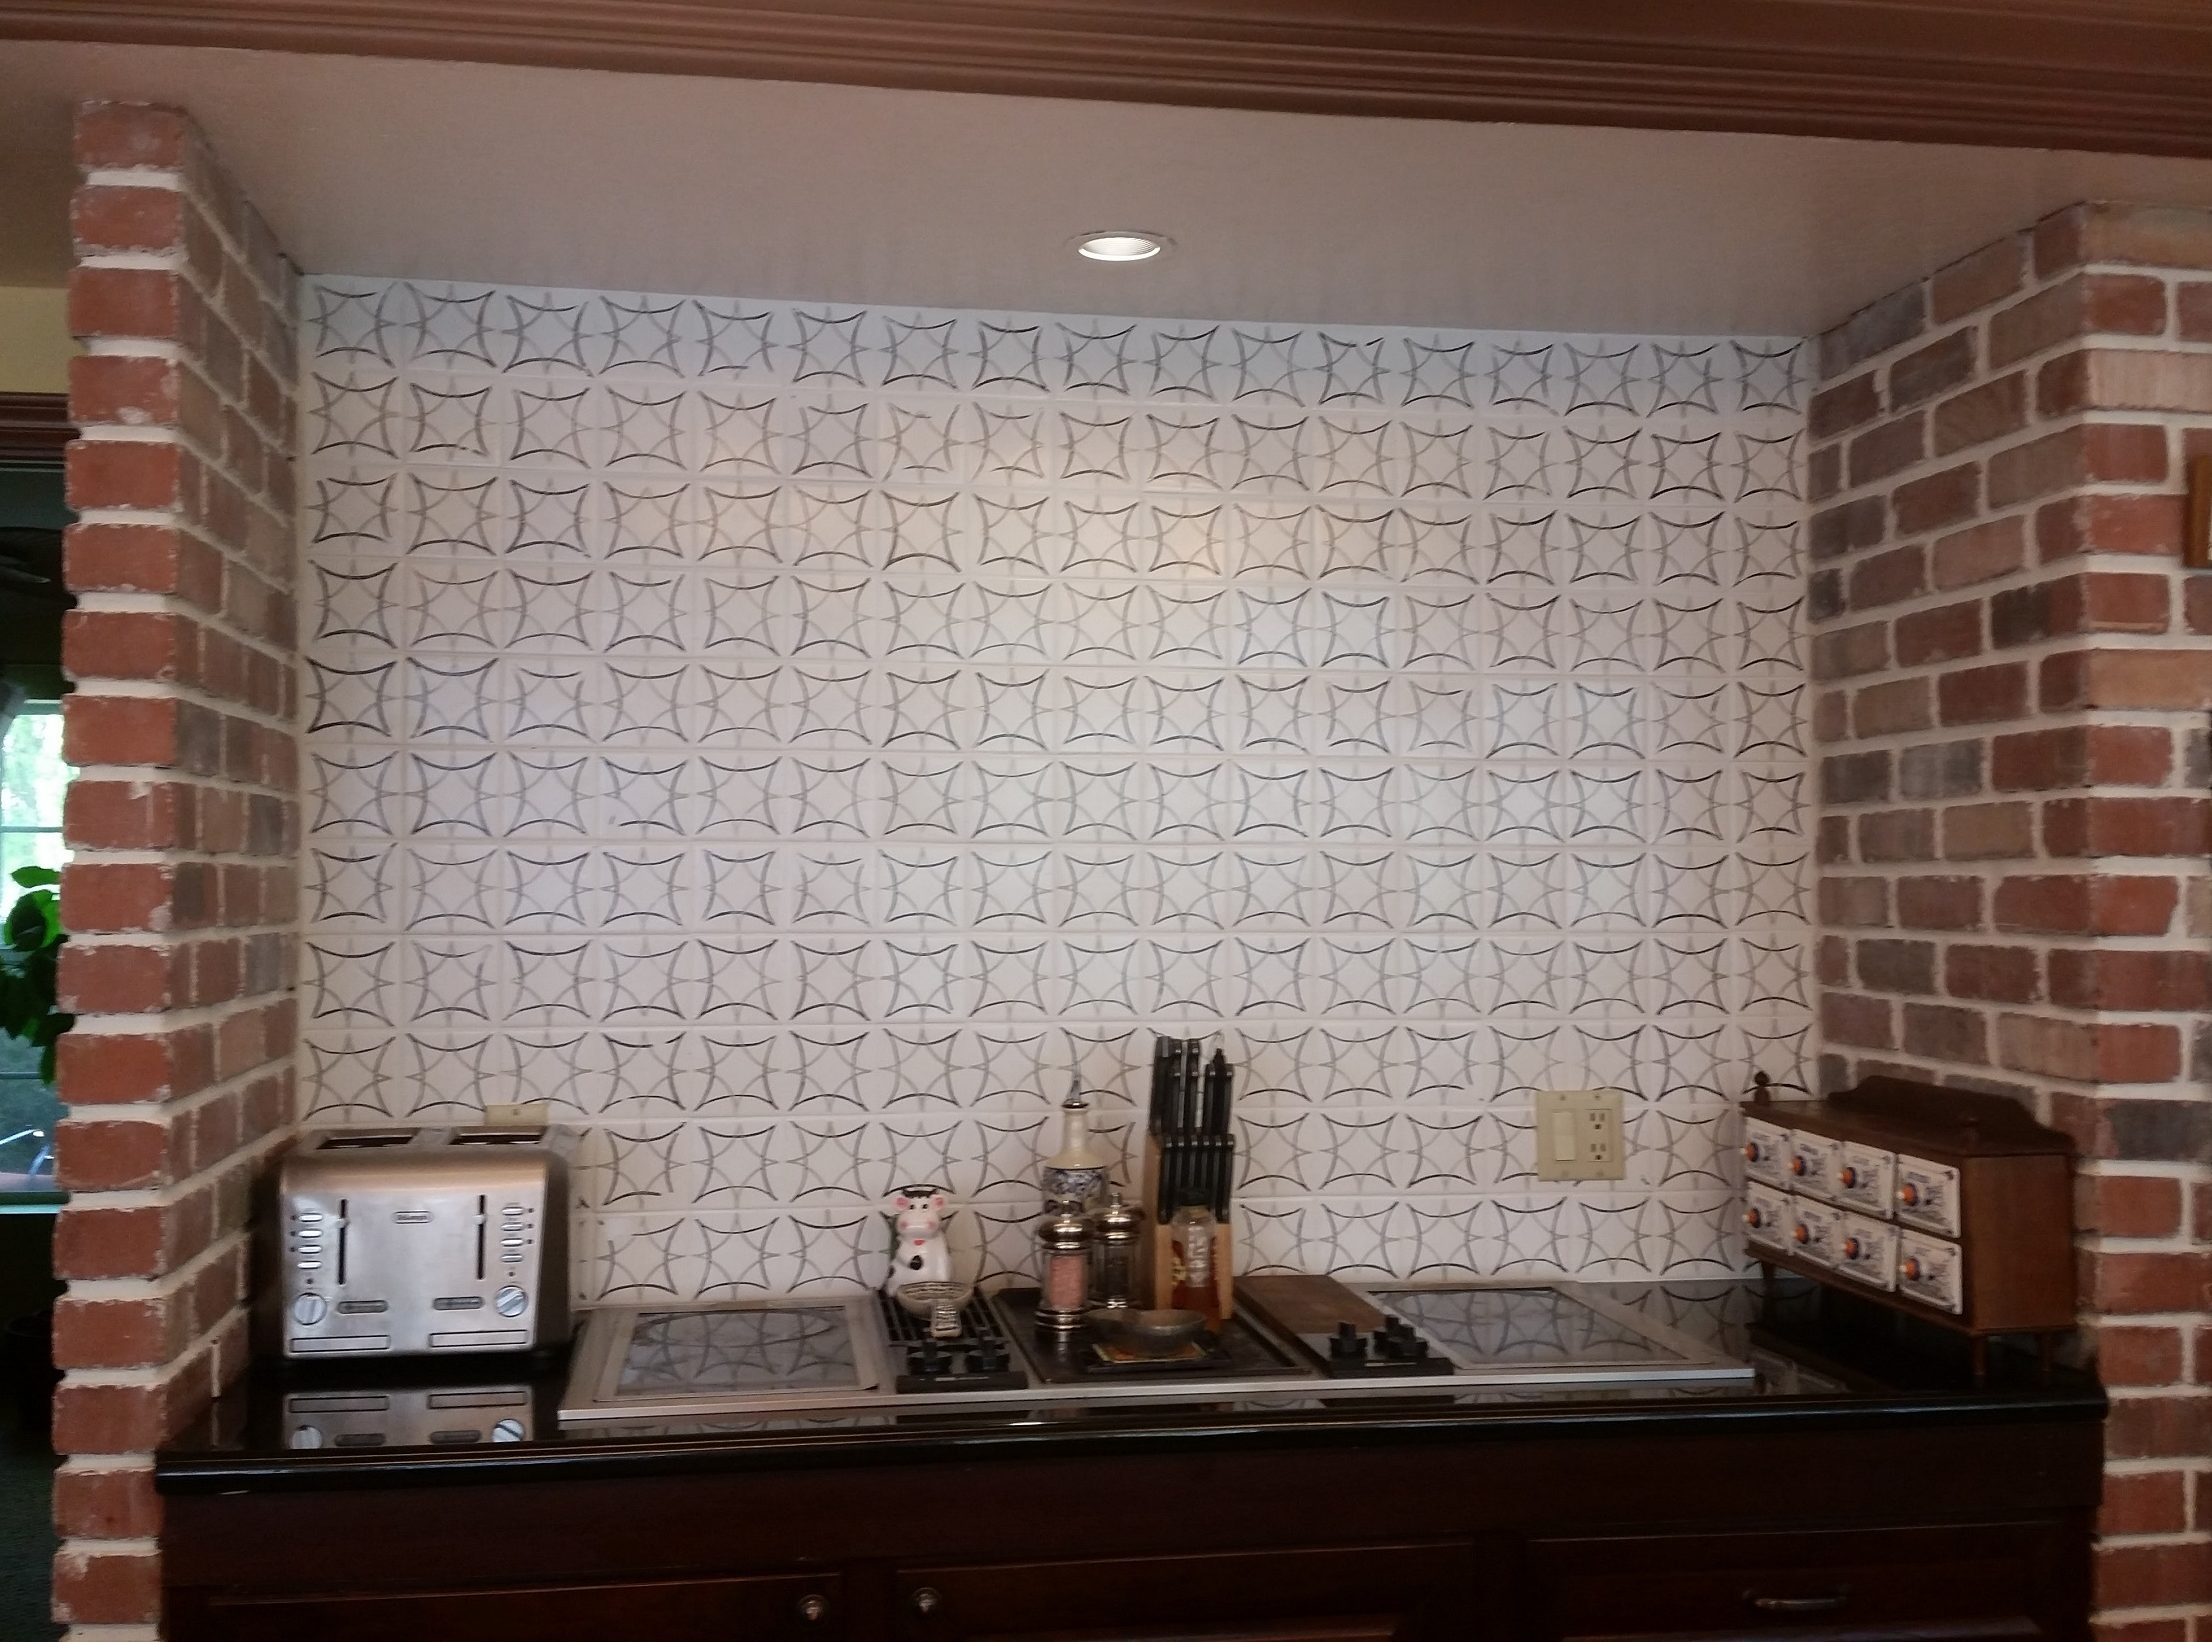 how to get hot wax off tile